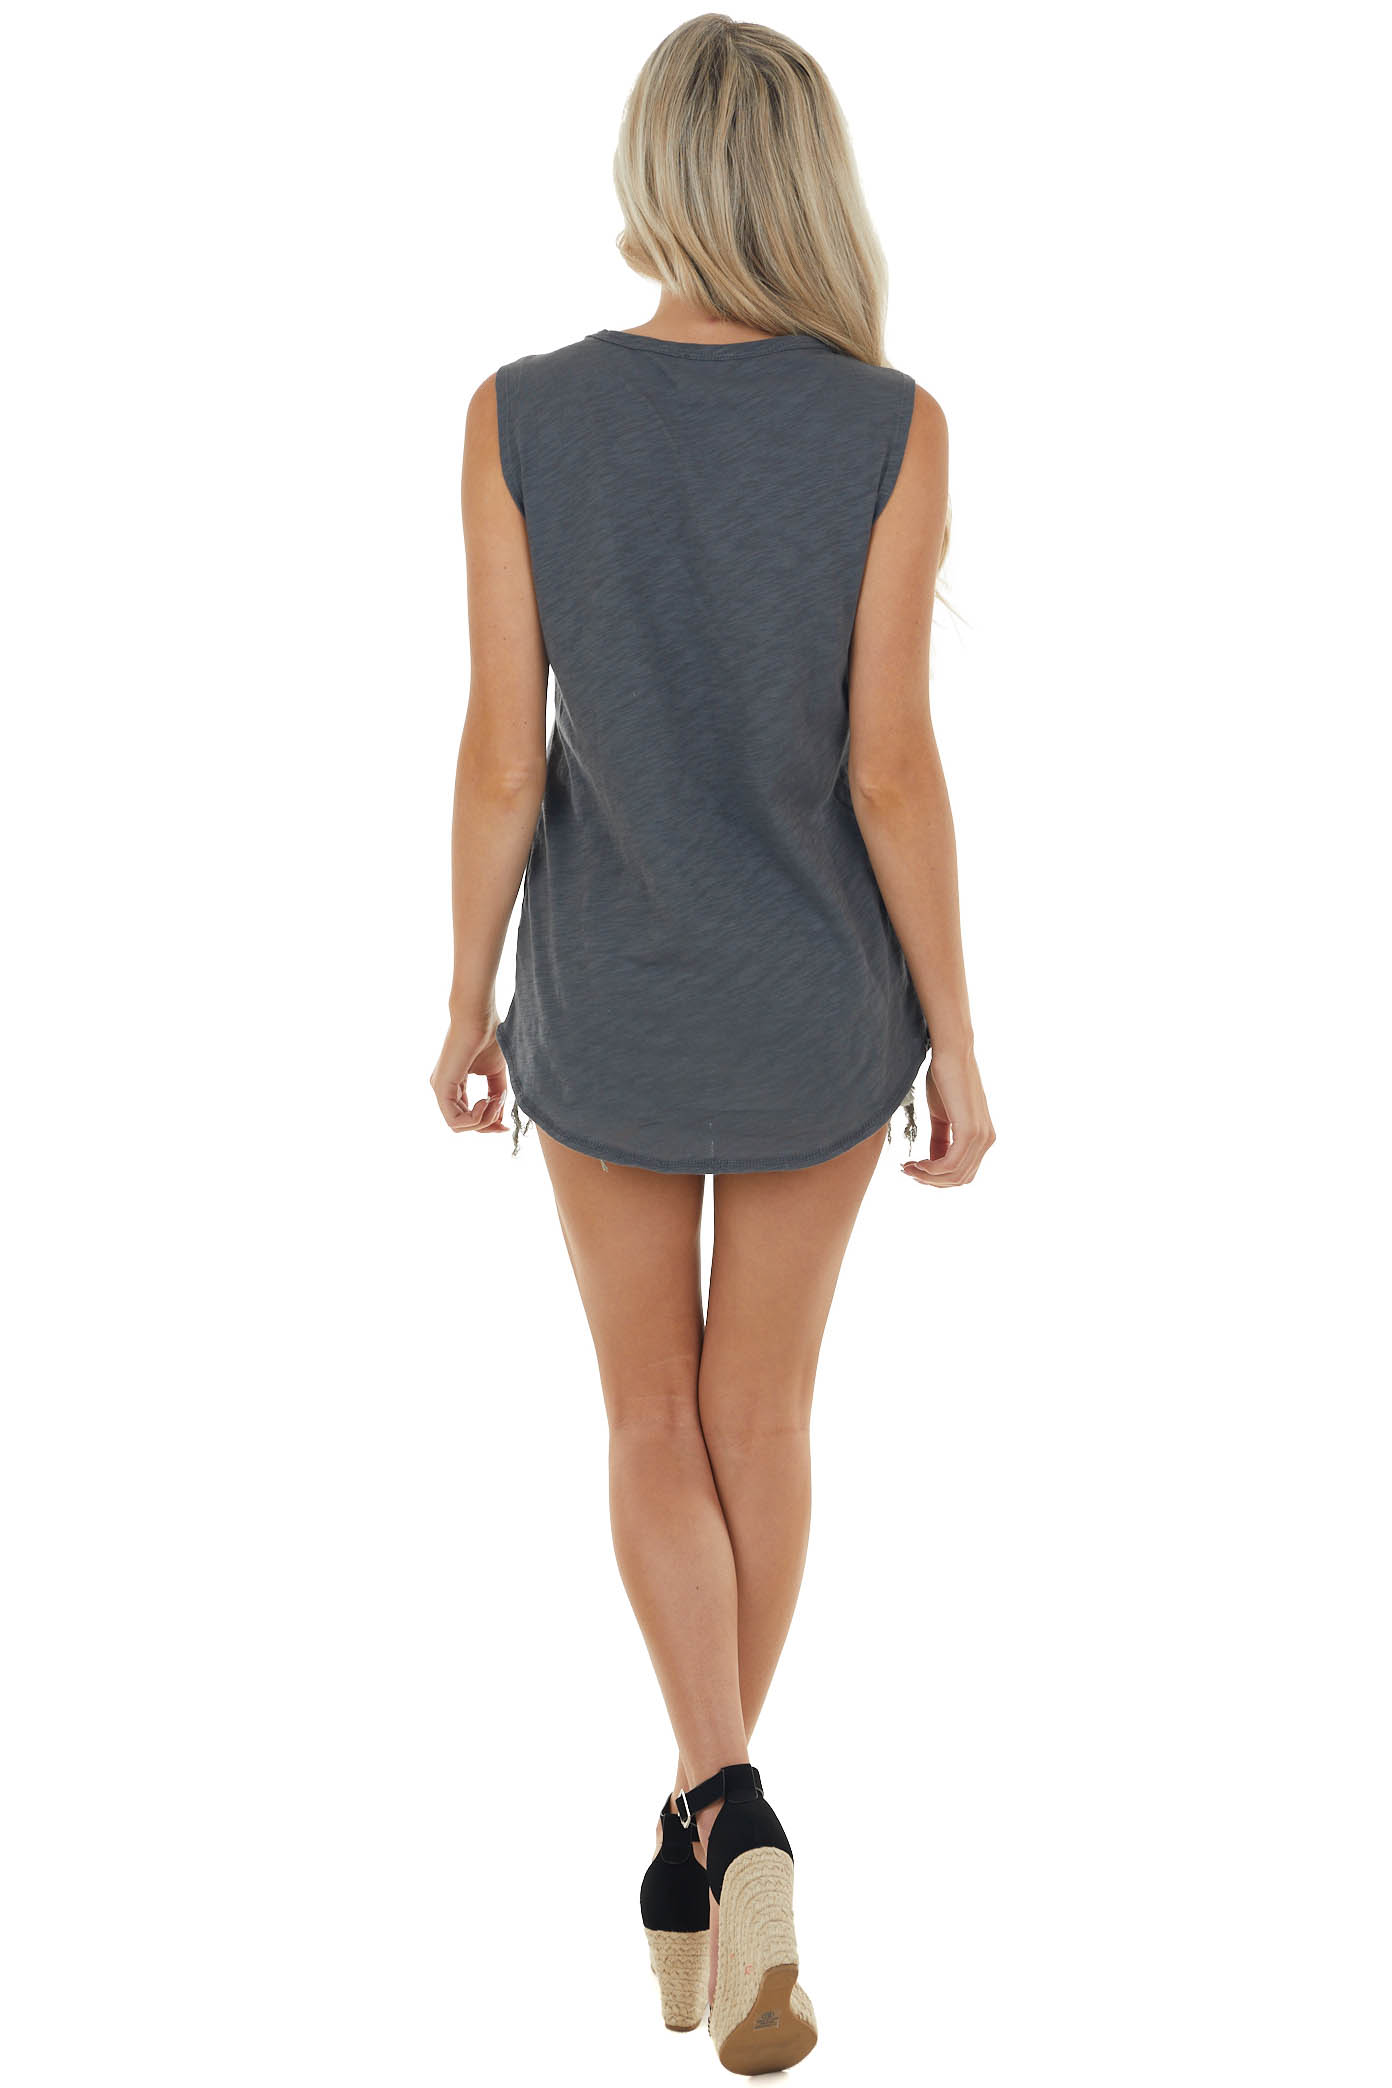 Charcoal Tank Top with Distressed Details